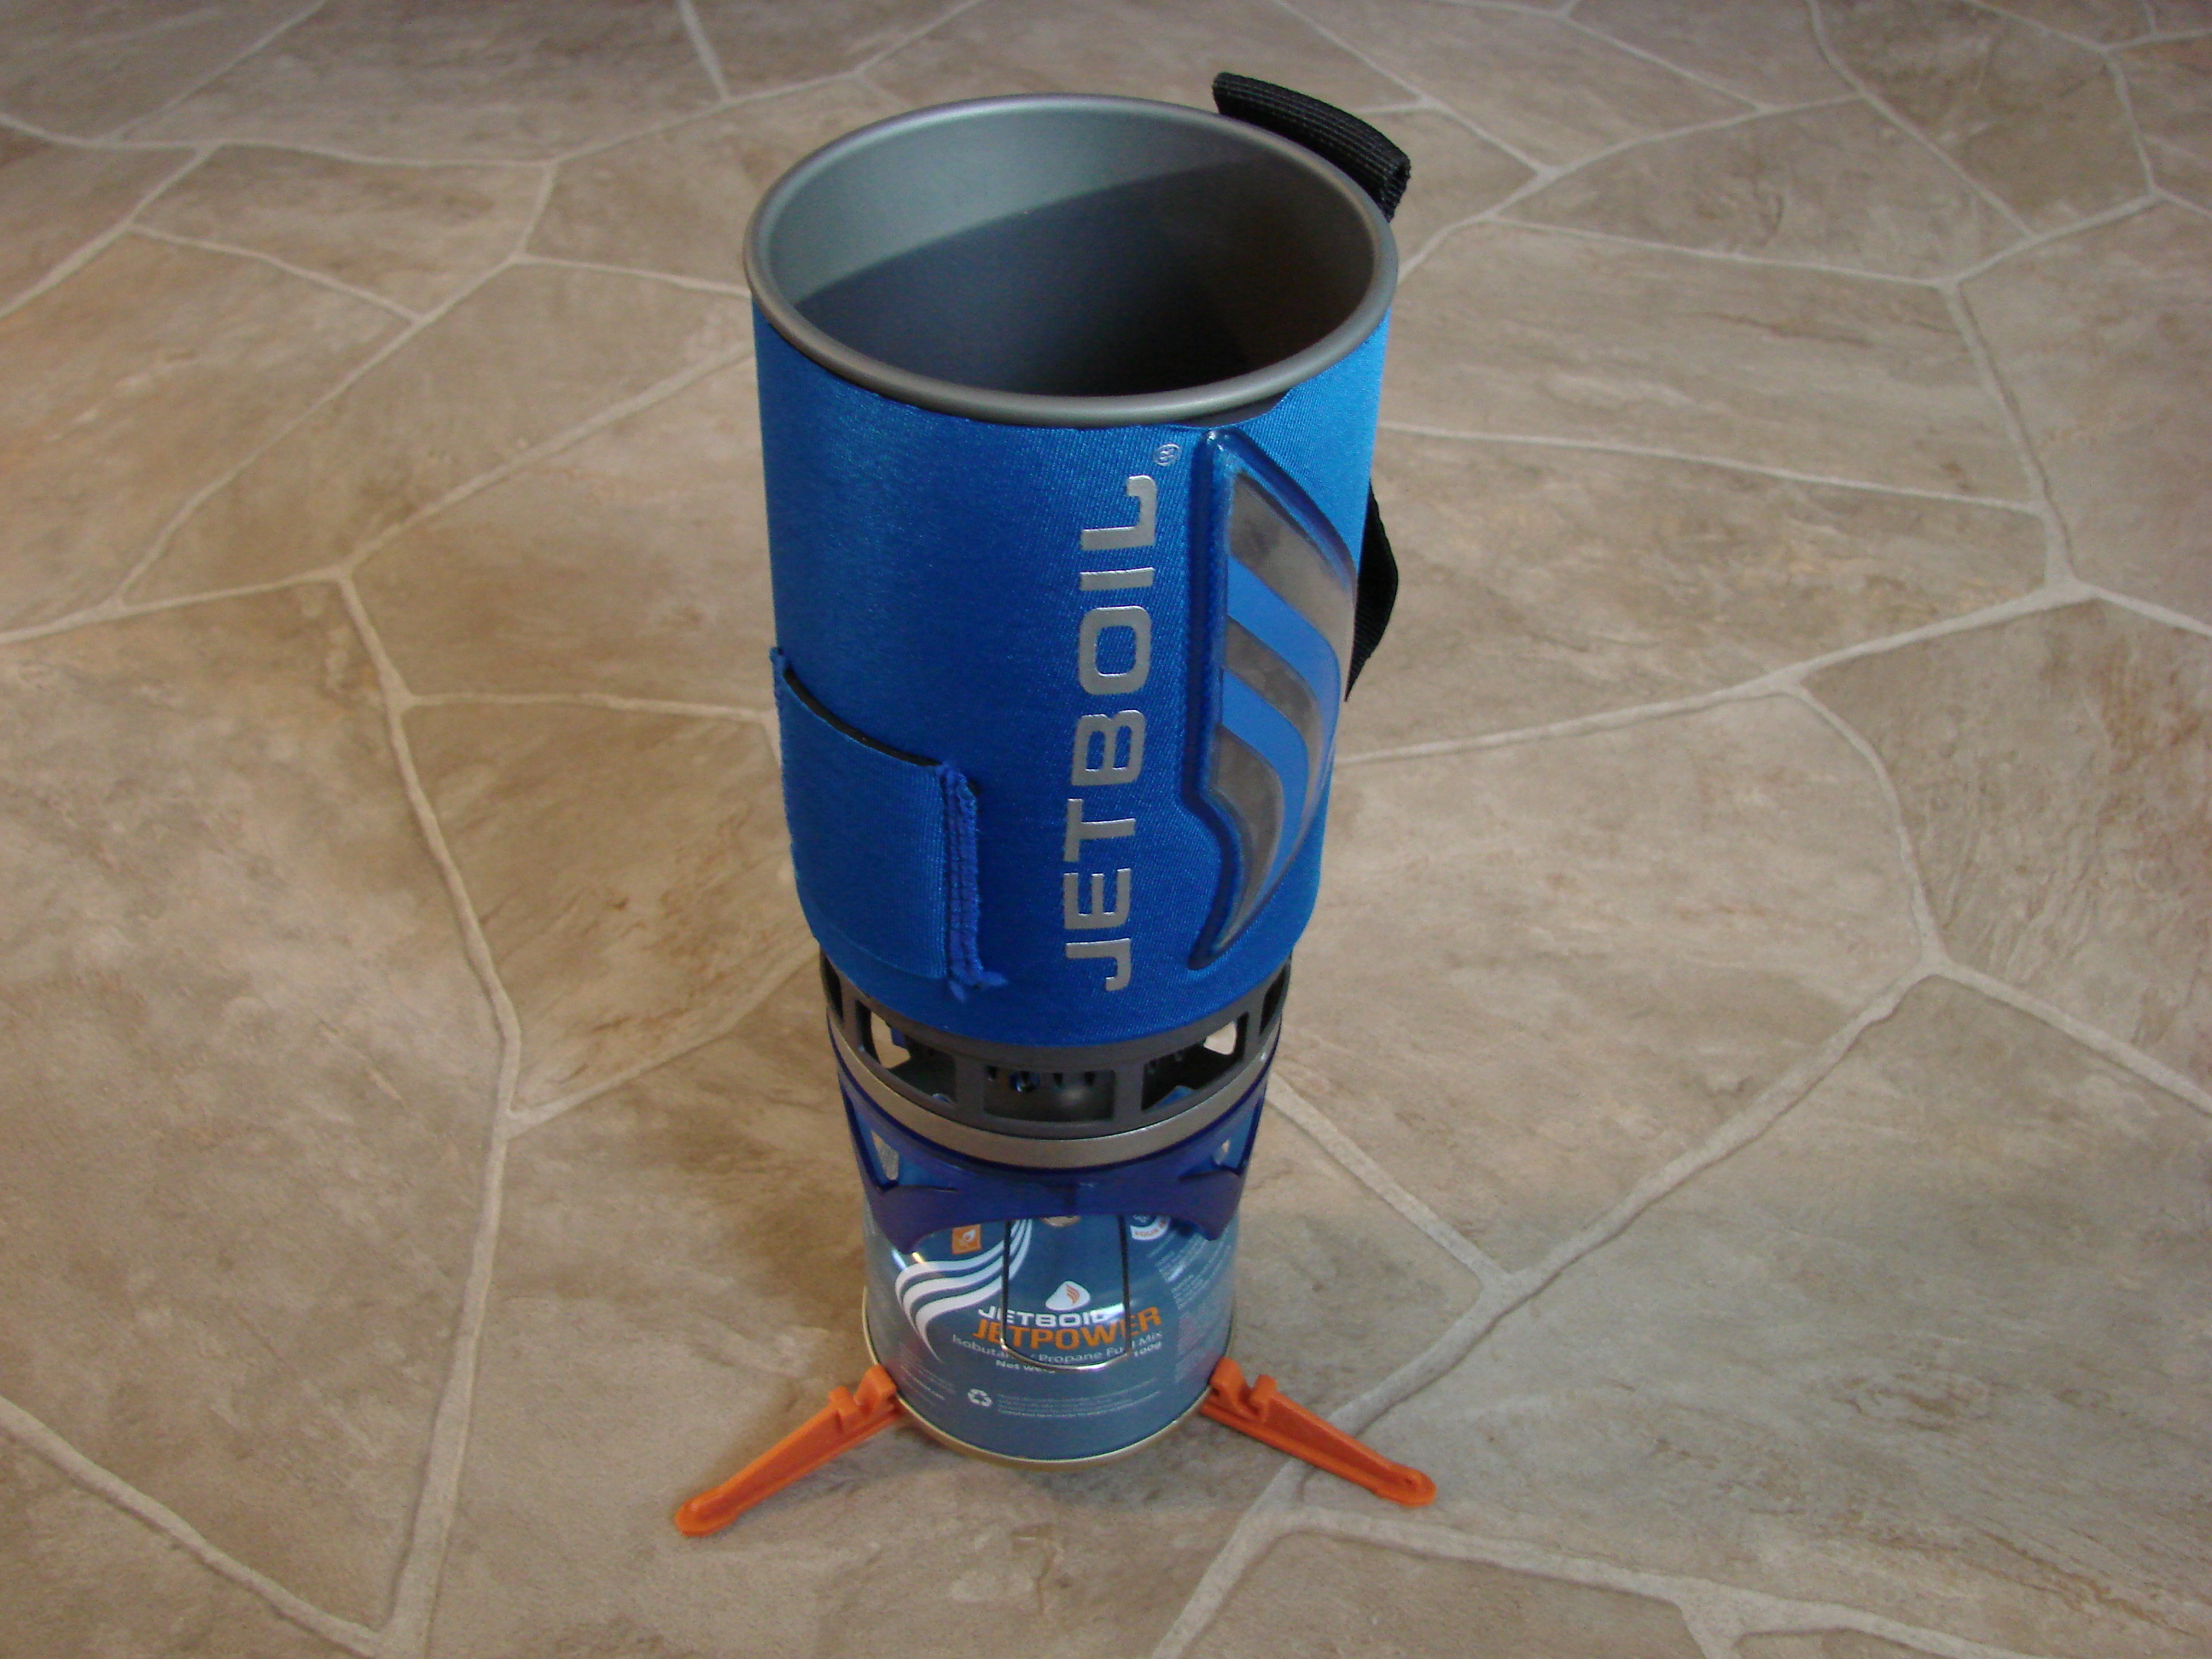 Flash by Jetboil review